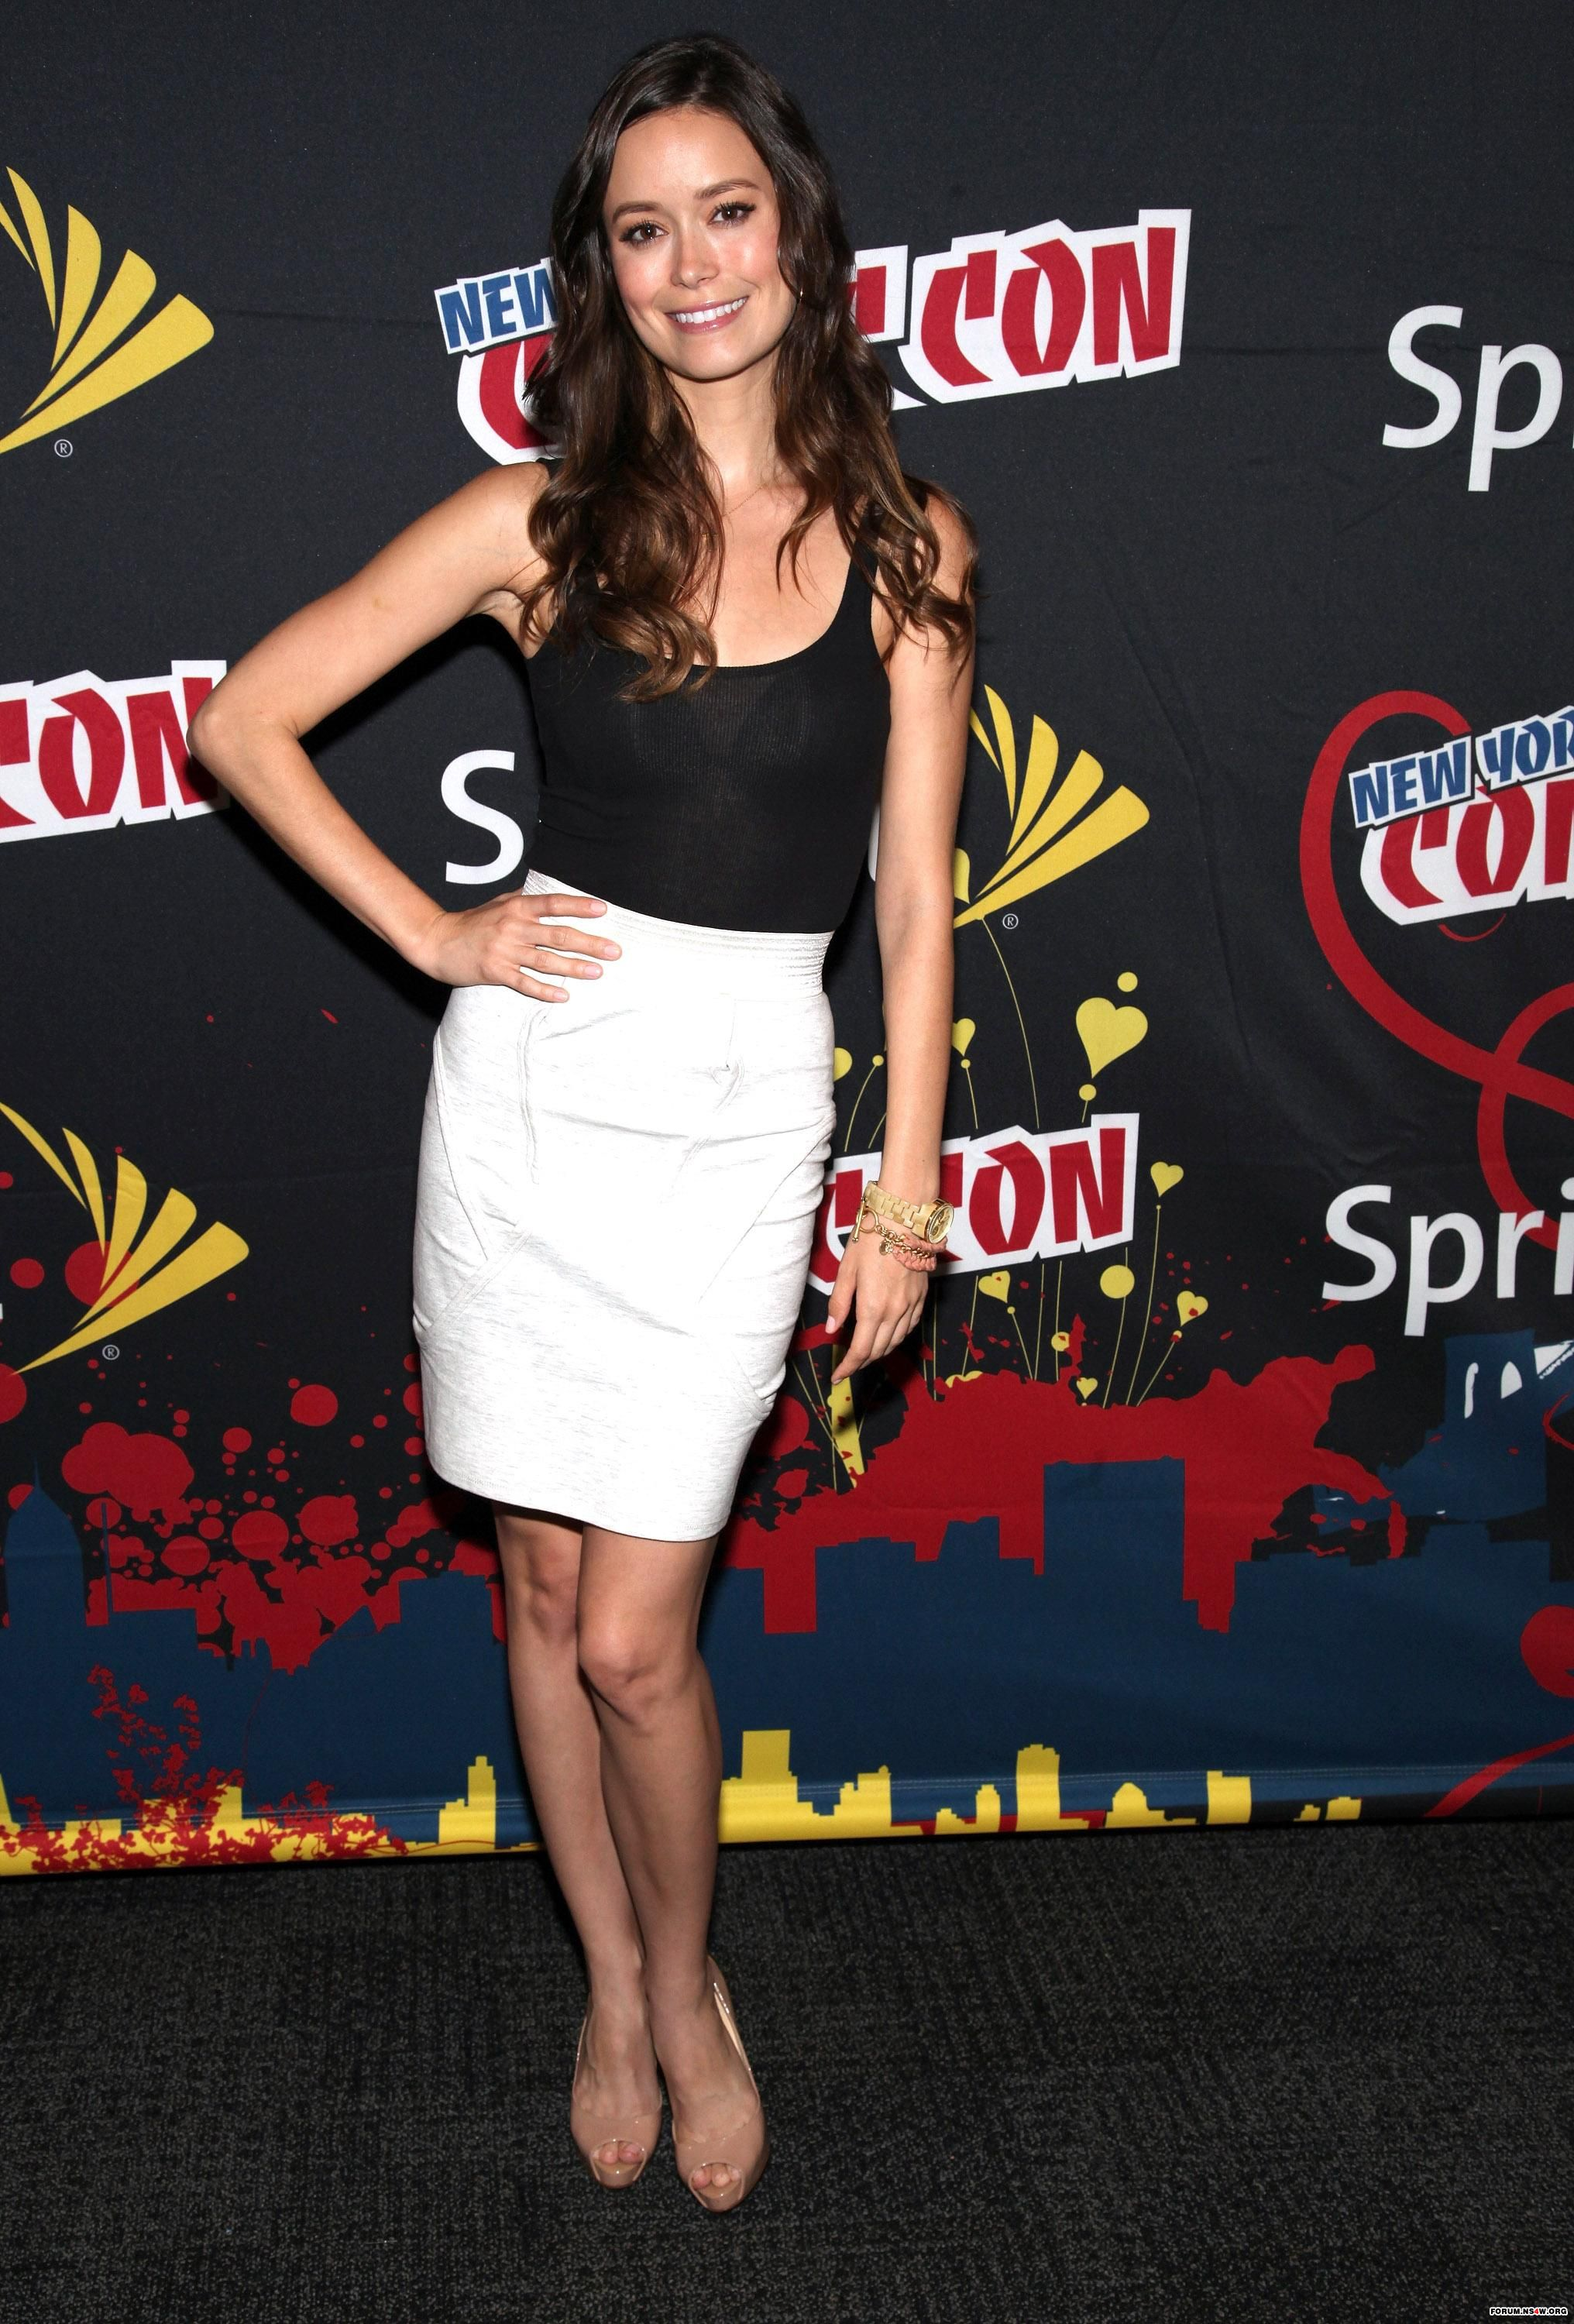 Summer Glau New York Comic Con appearance in New York